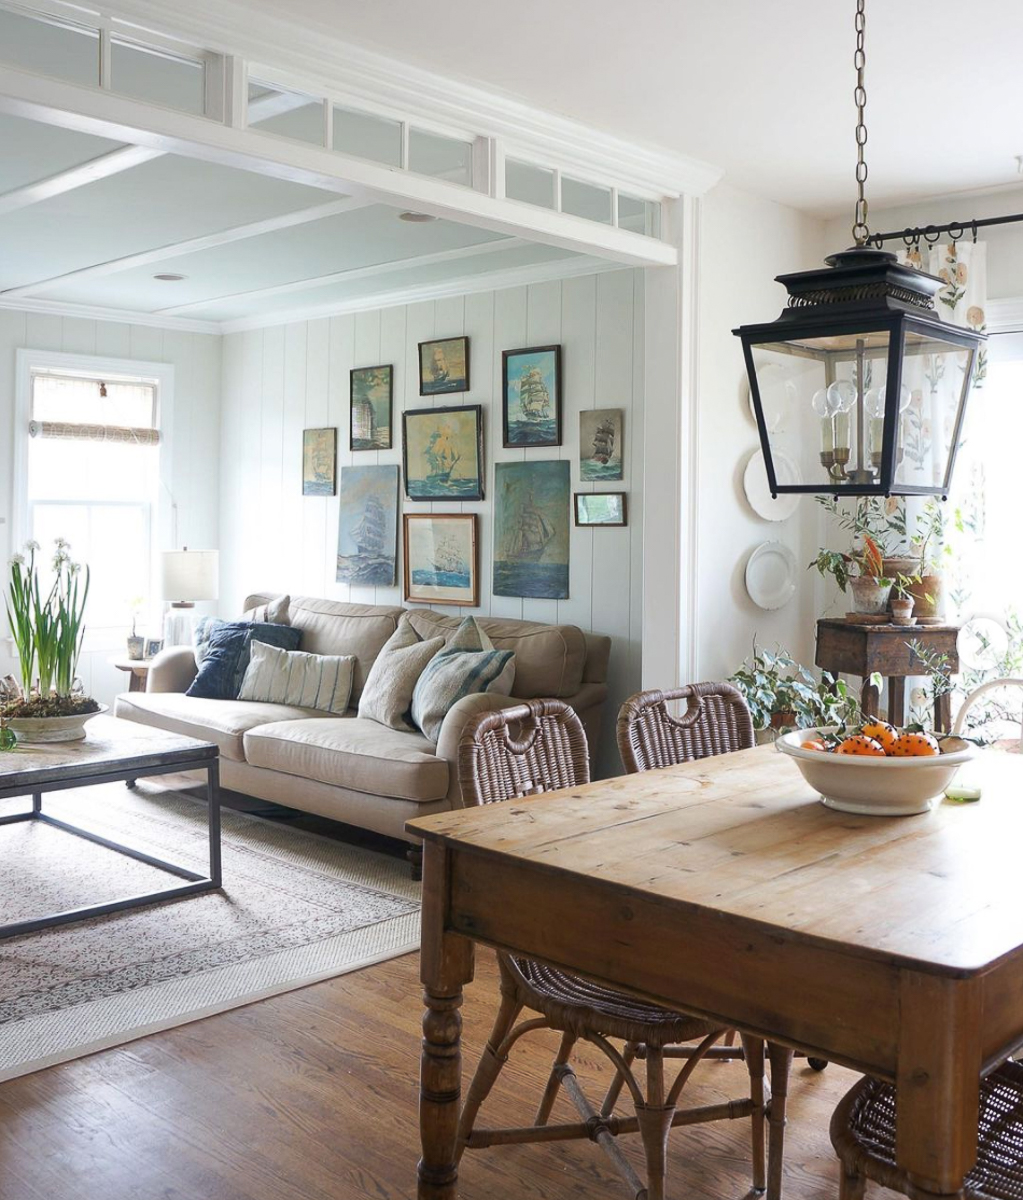 DIY transom and planked walls add farmhouse flair to this new build home kellyelko.com